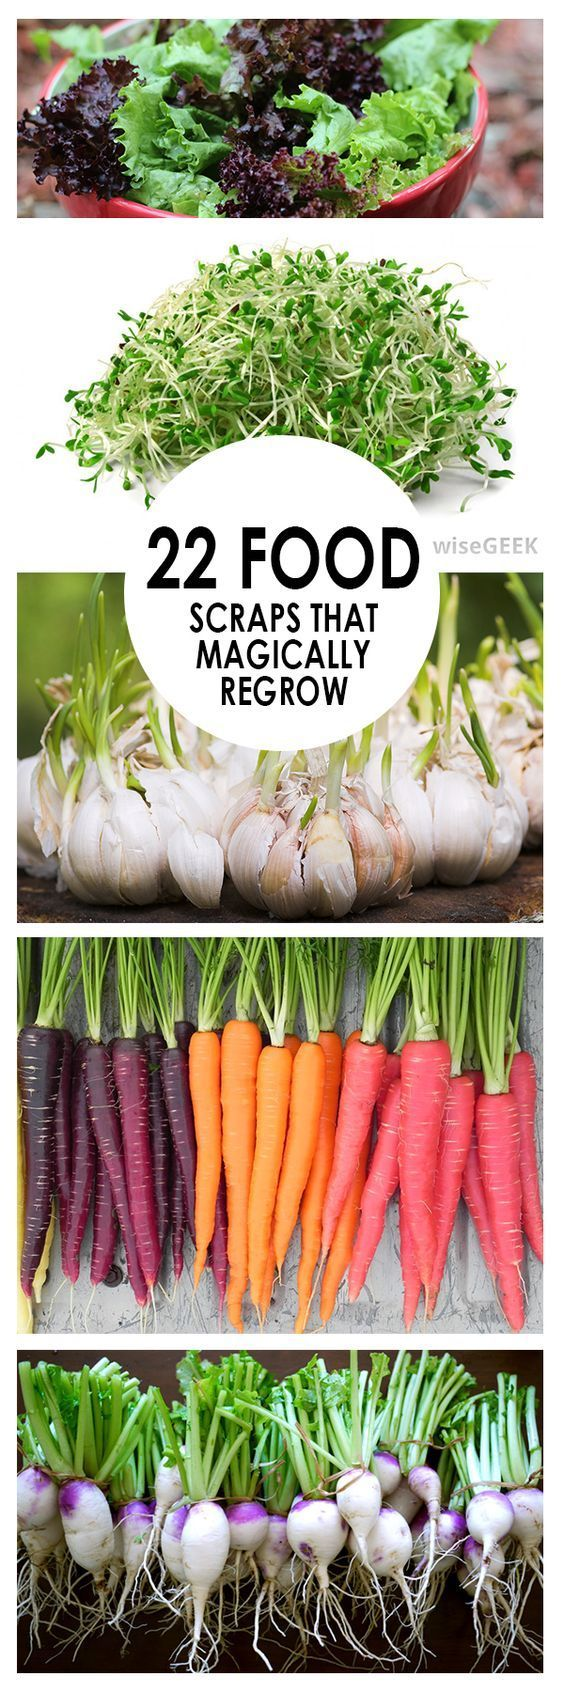 Recycling is great, especially when you can recycle your food. Stop throwing those old scraps away, because believe it or not, those veggies can be regrown! Here are 22 foods that magically regrow, you'll never have to buy celery again!